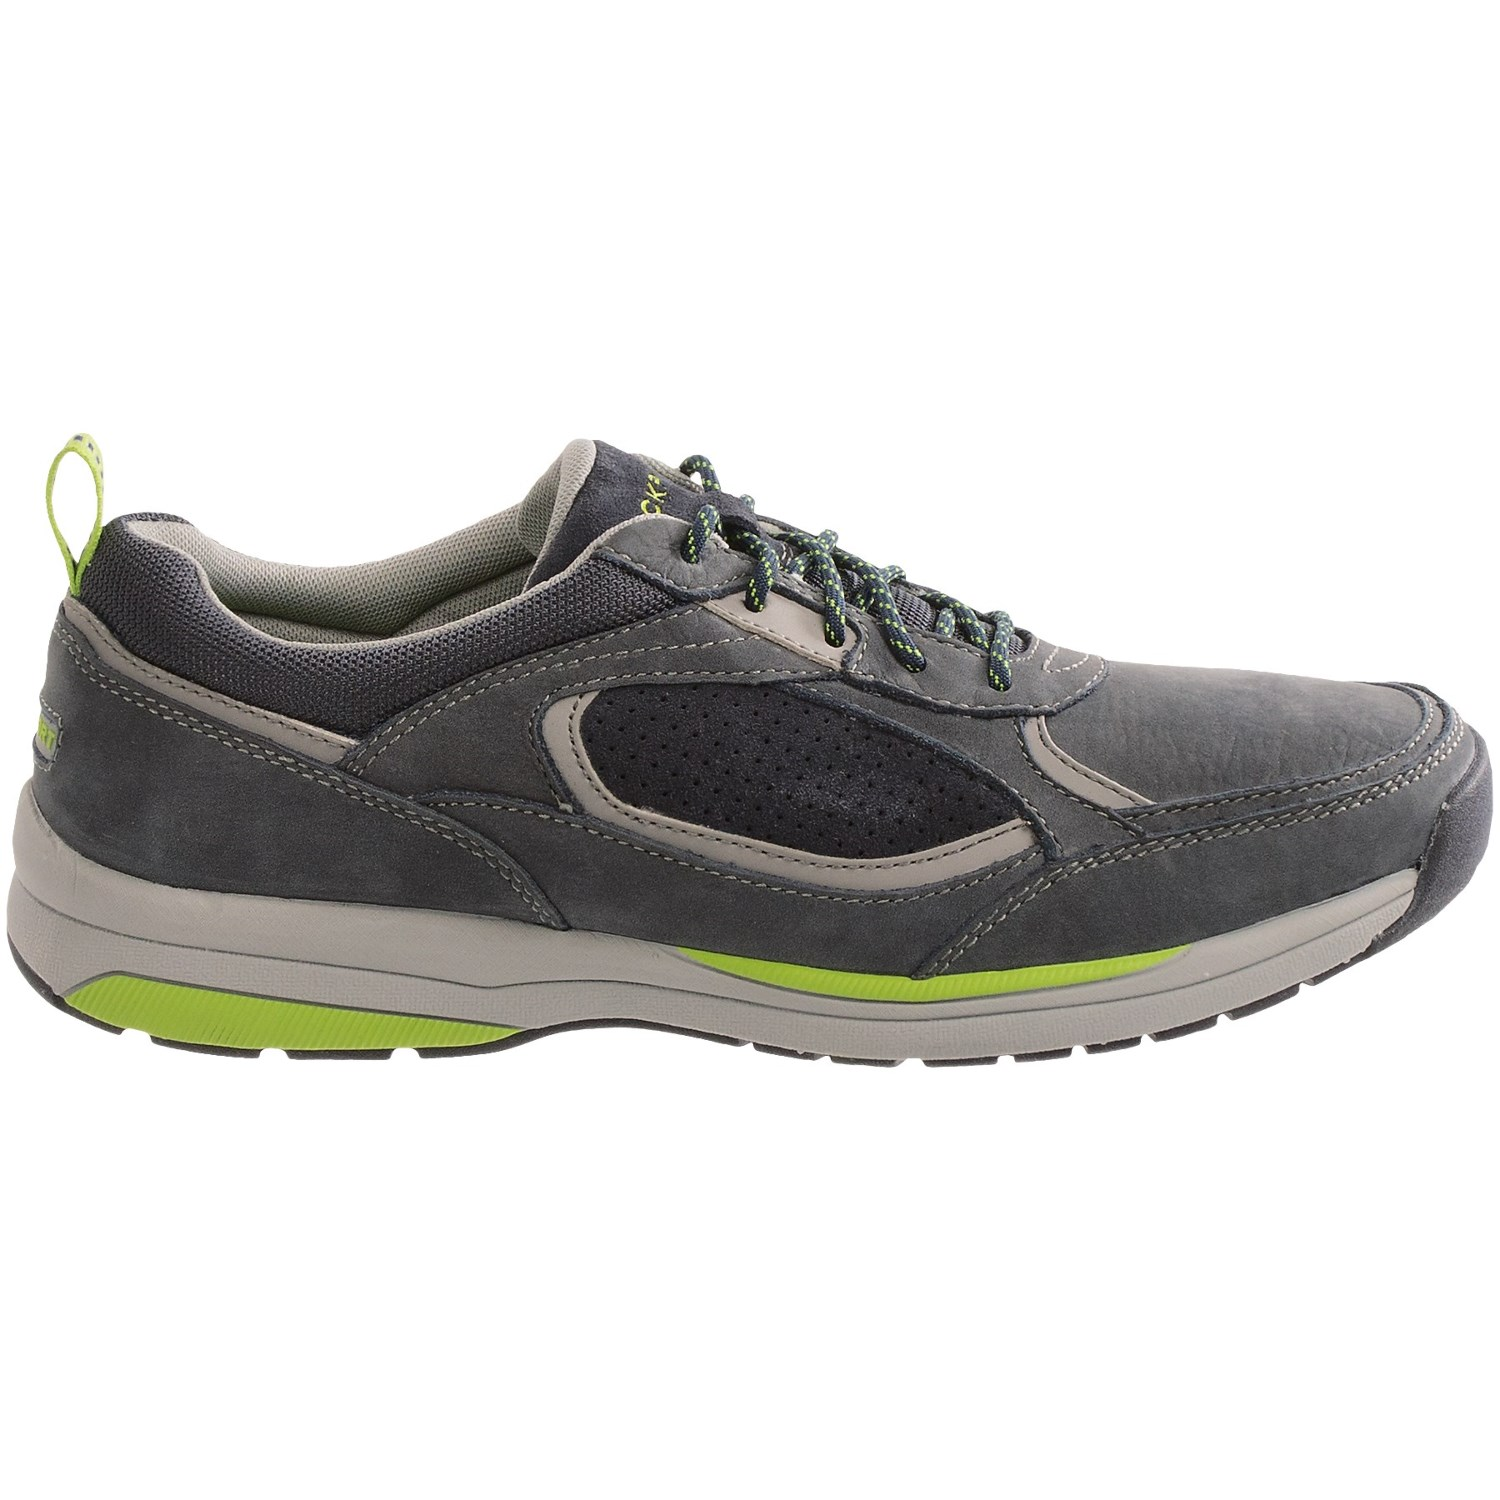 rockport rocstride sport balance shoes for 9173g